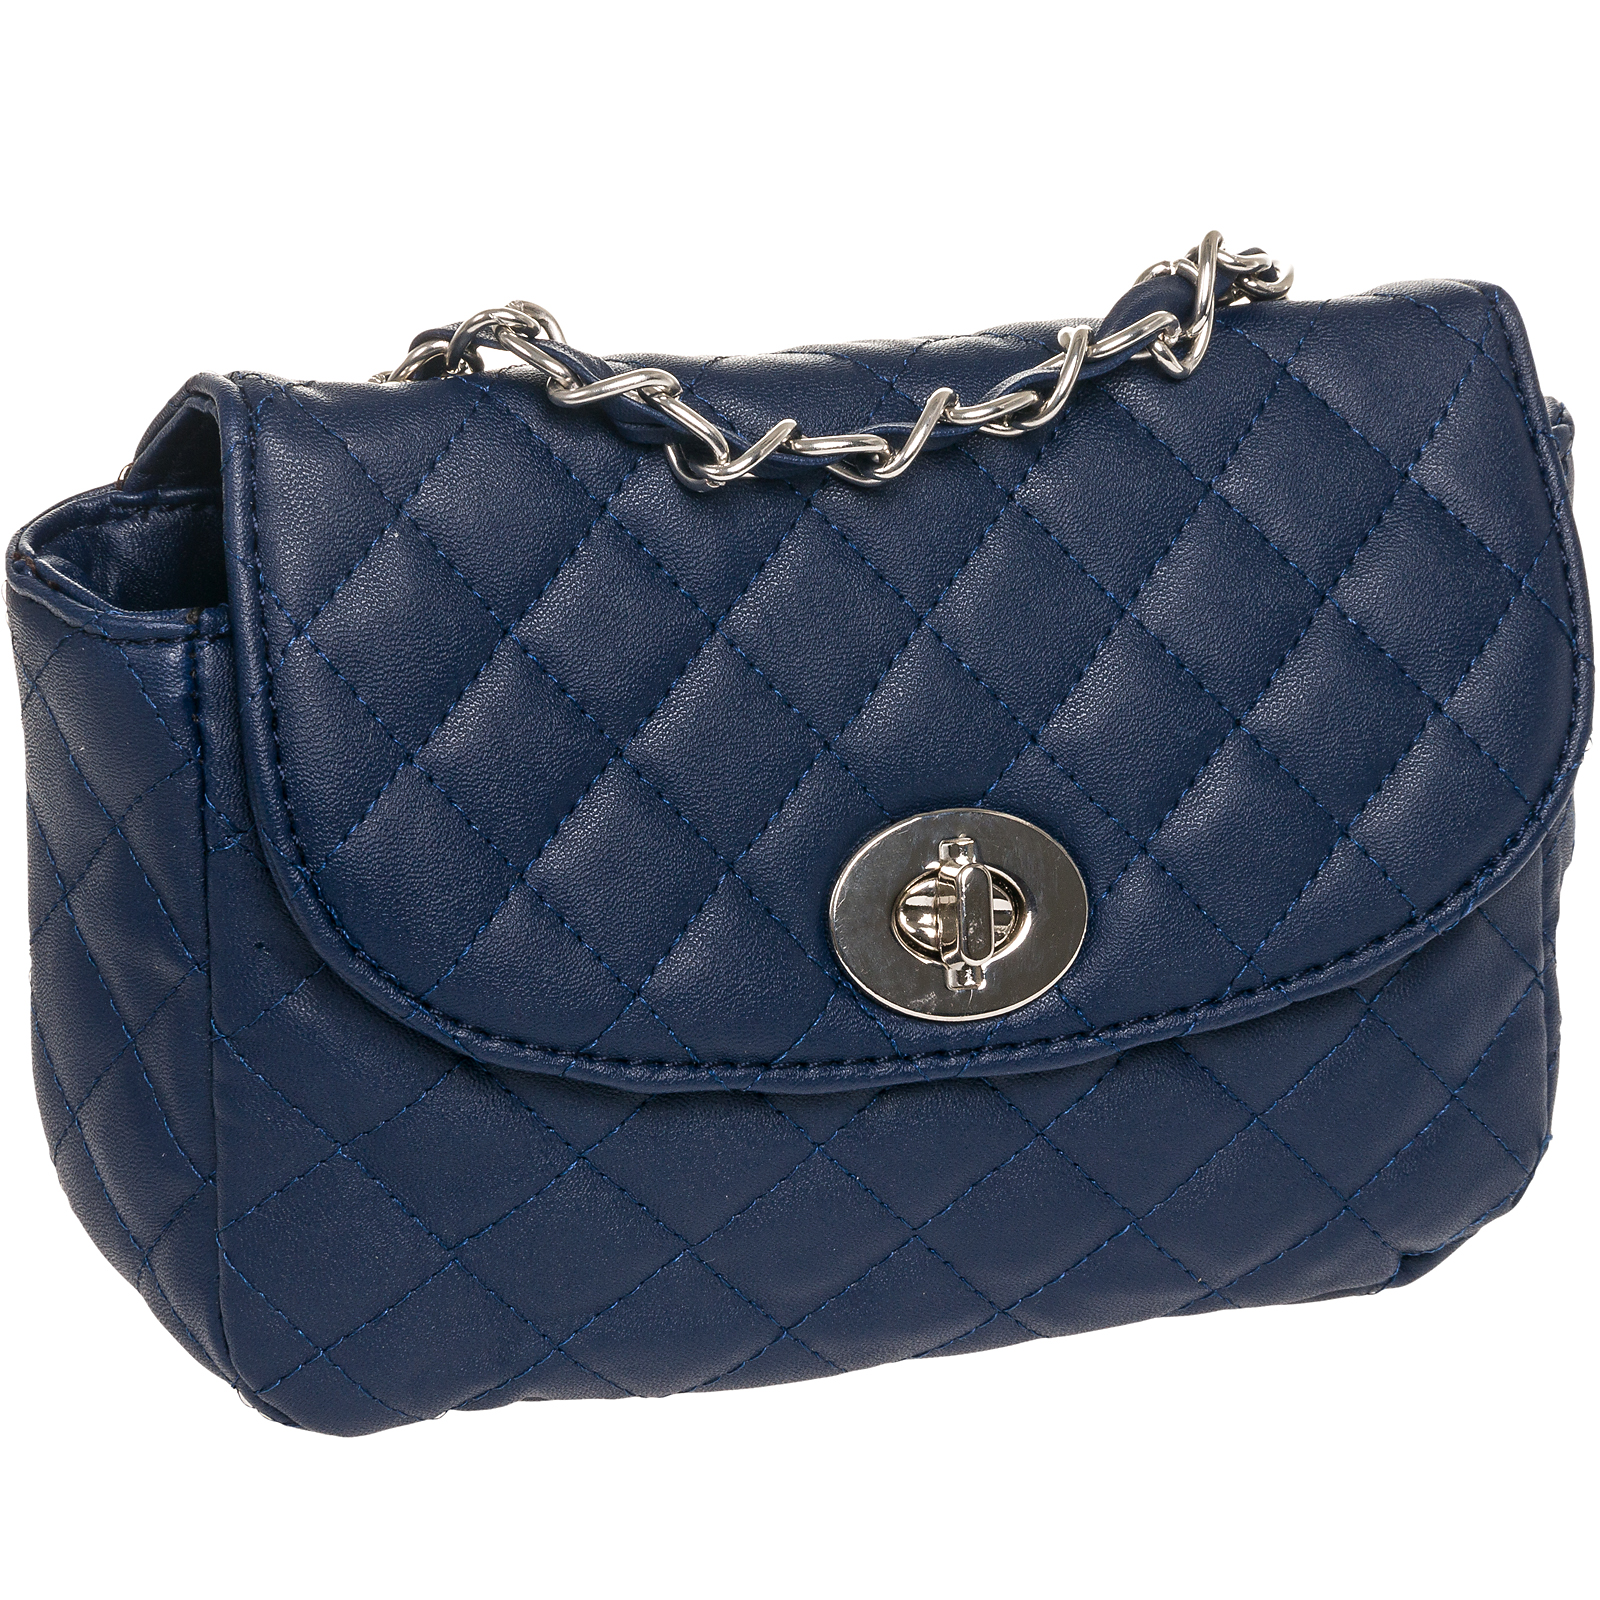 about Navy Blue Quilted Faux Leather Crossbody Handbag Bag Purse ...